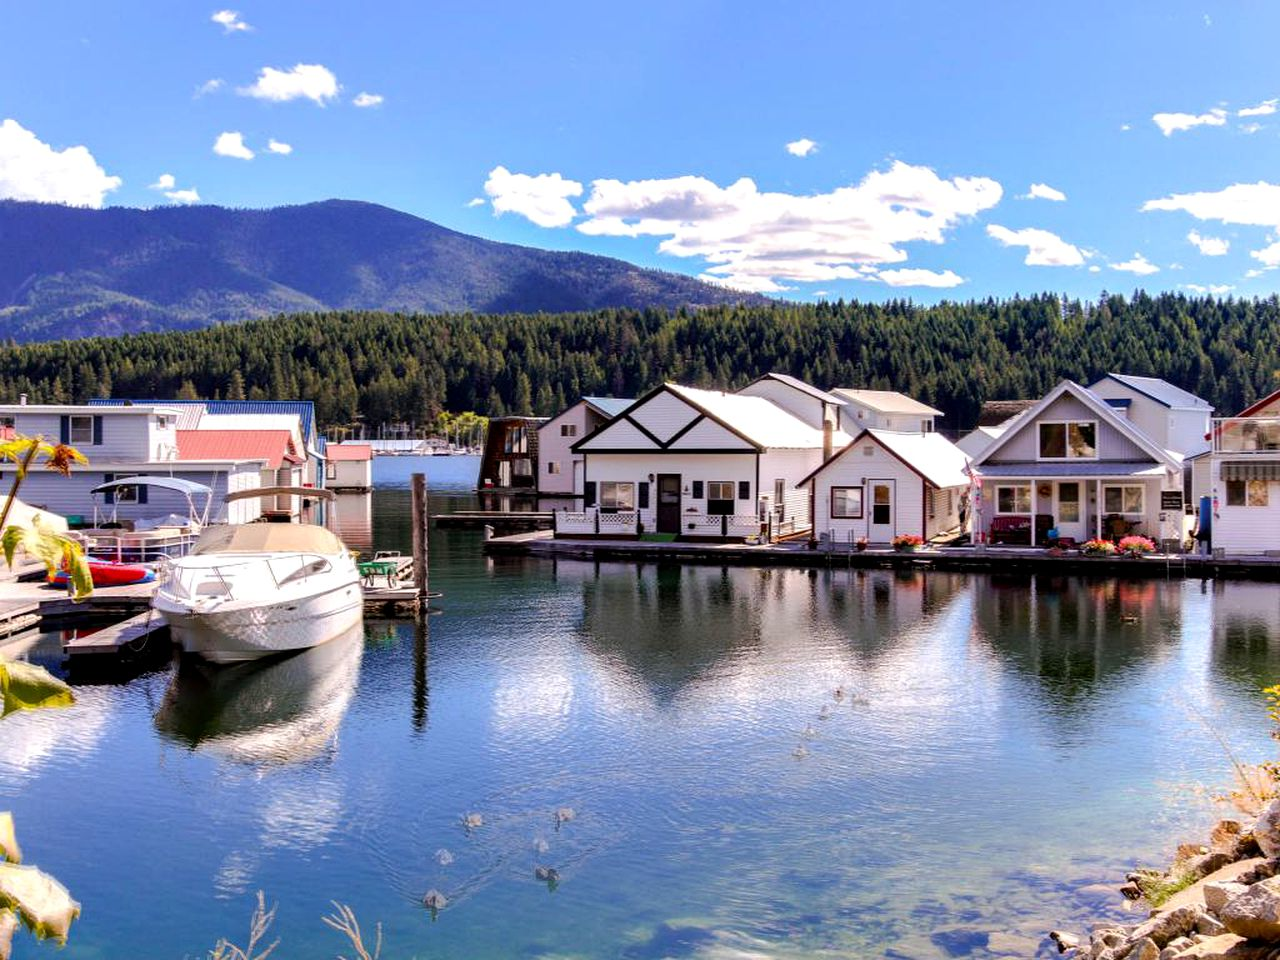 Boats & Floating Homes (Bayview, Idaho, United States)